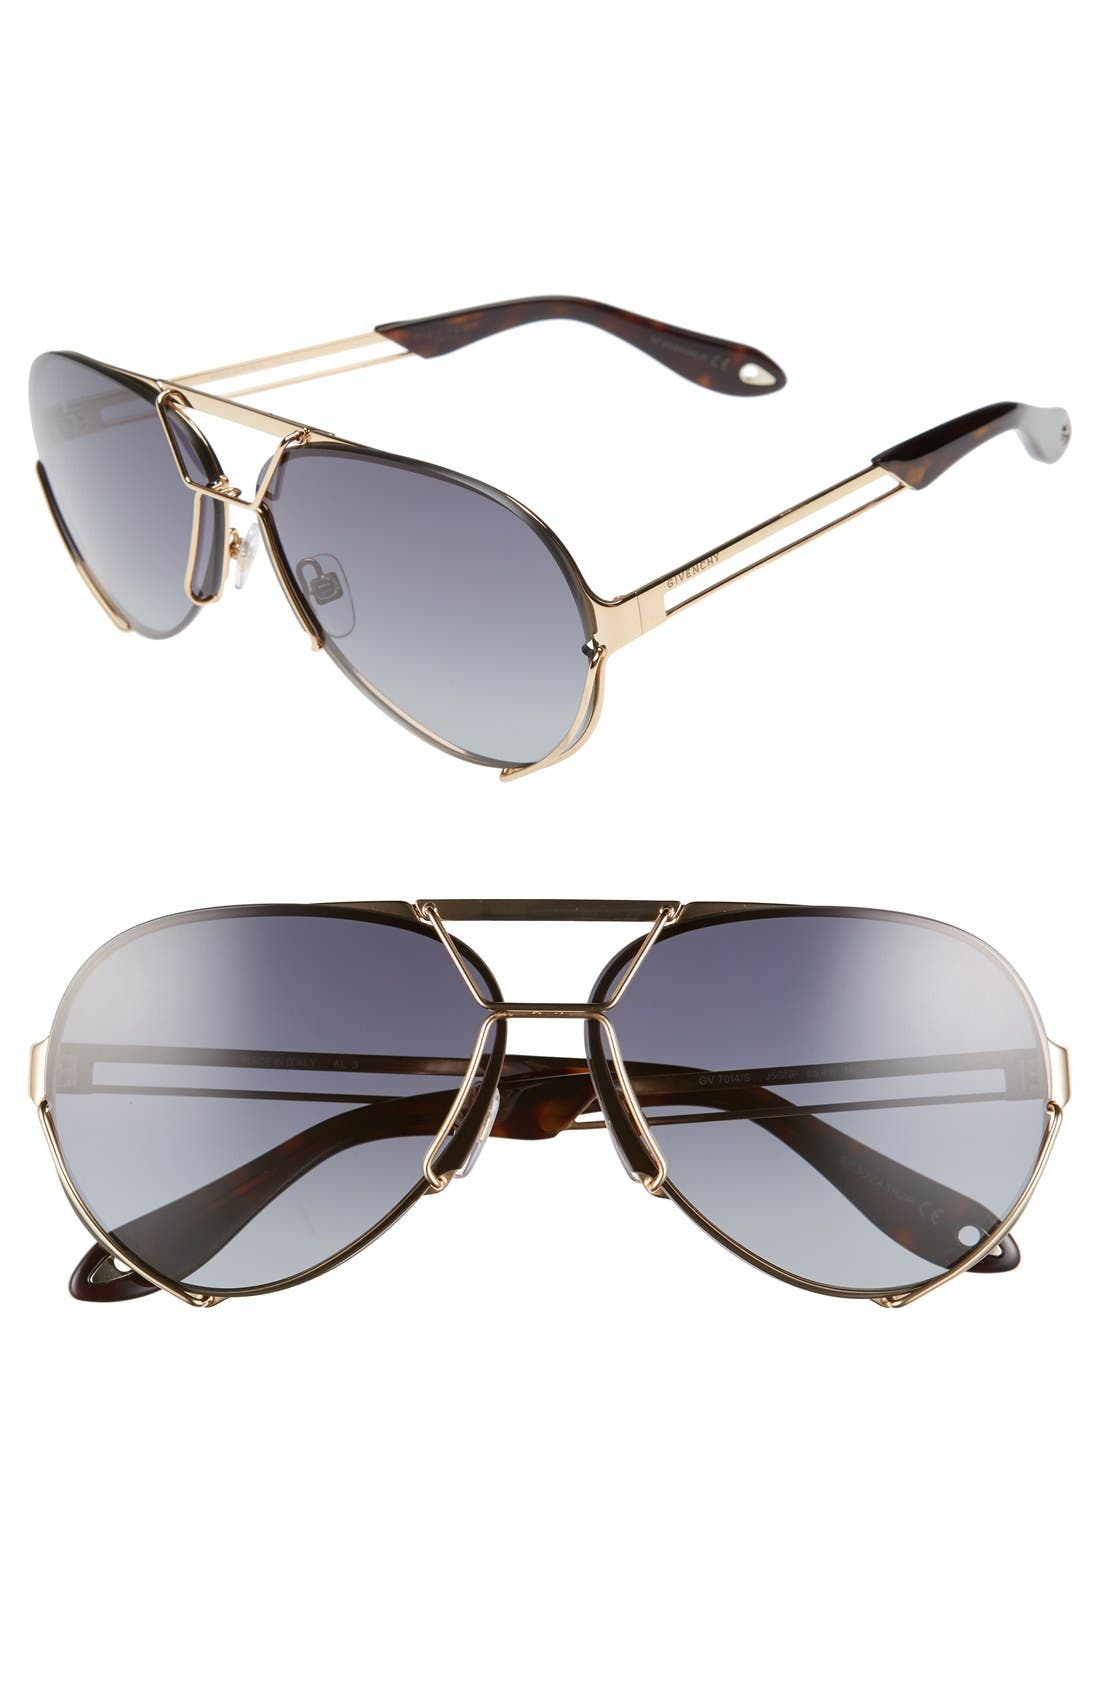 GIVENCHY INTERCHANGEABLE LENS AVIATOR METAL SUNGLASSES, GOLD